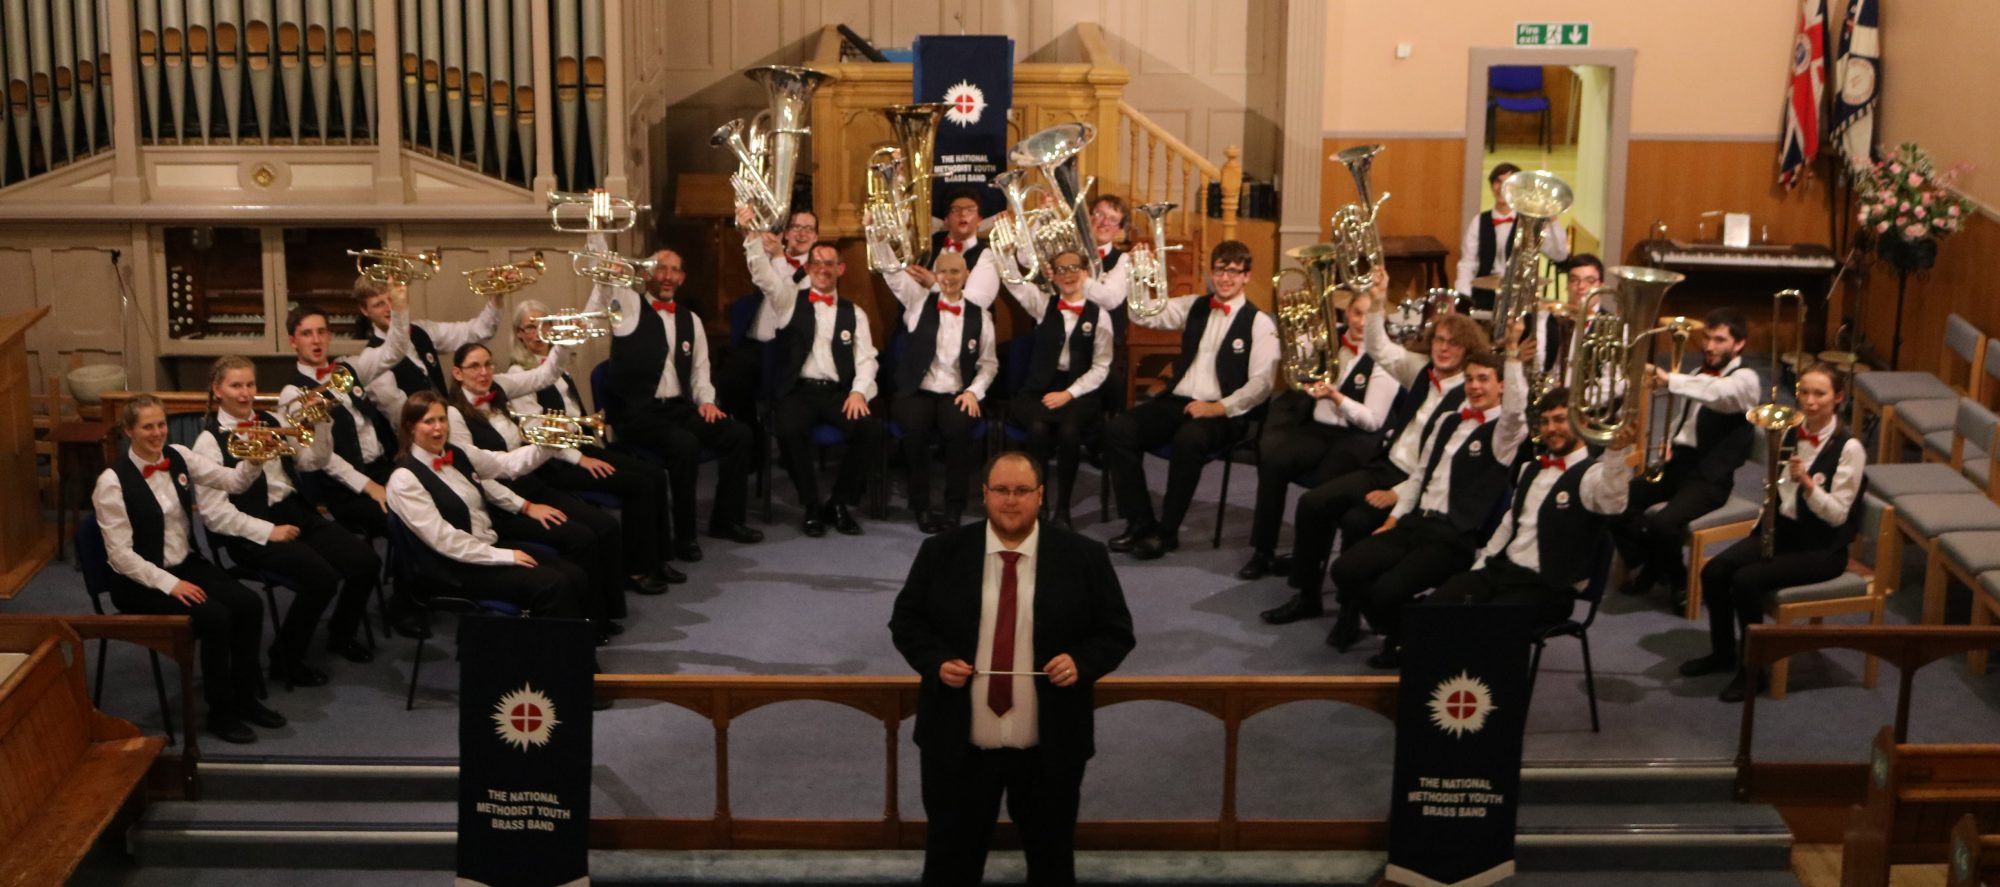 The National Methodist Youth Brass Band